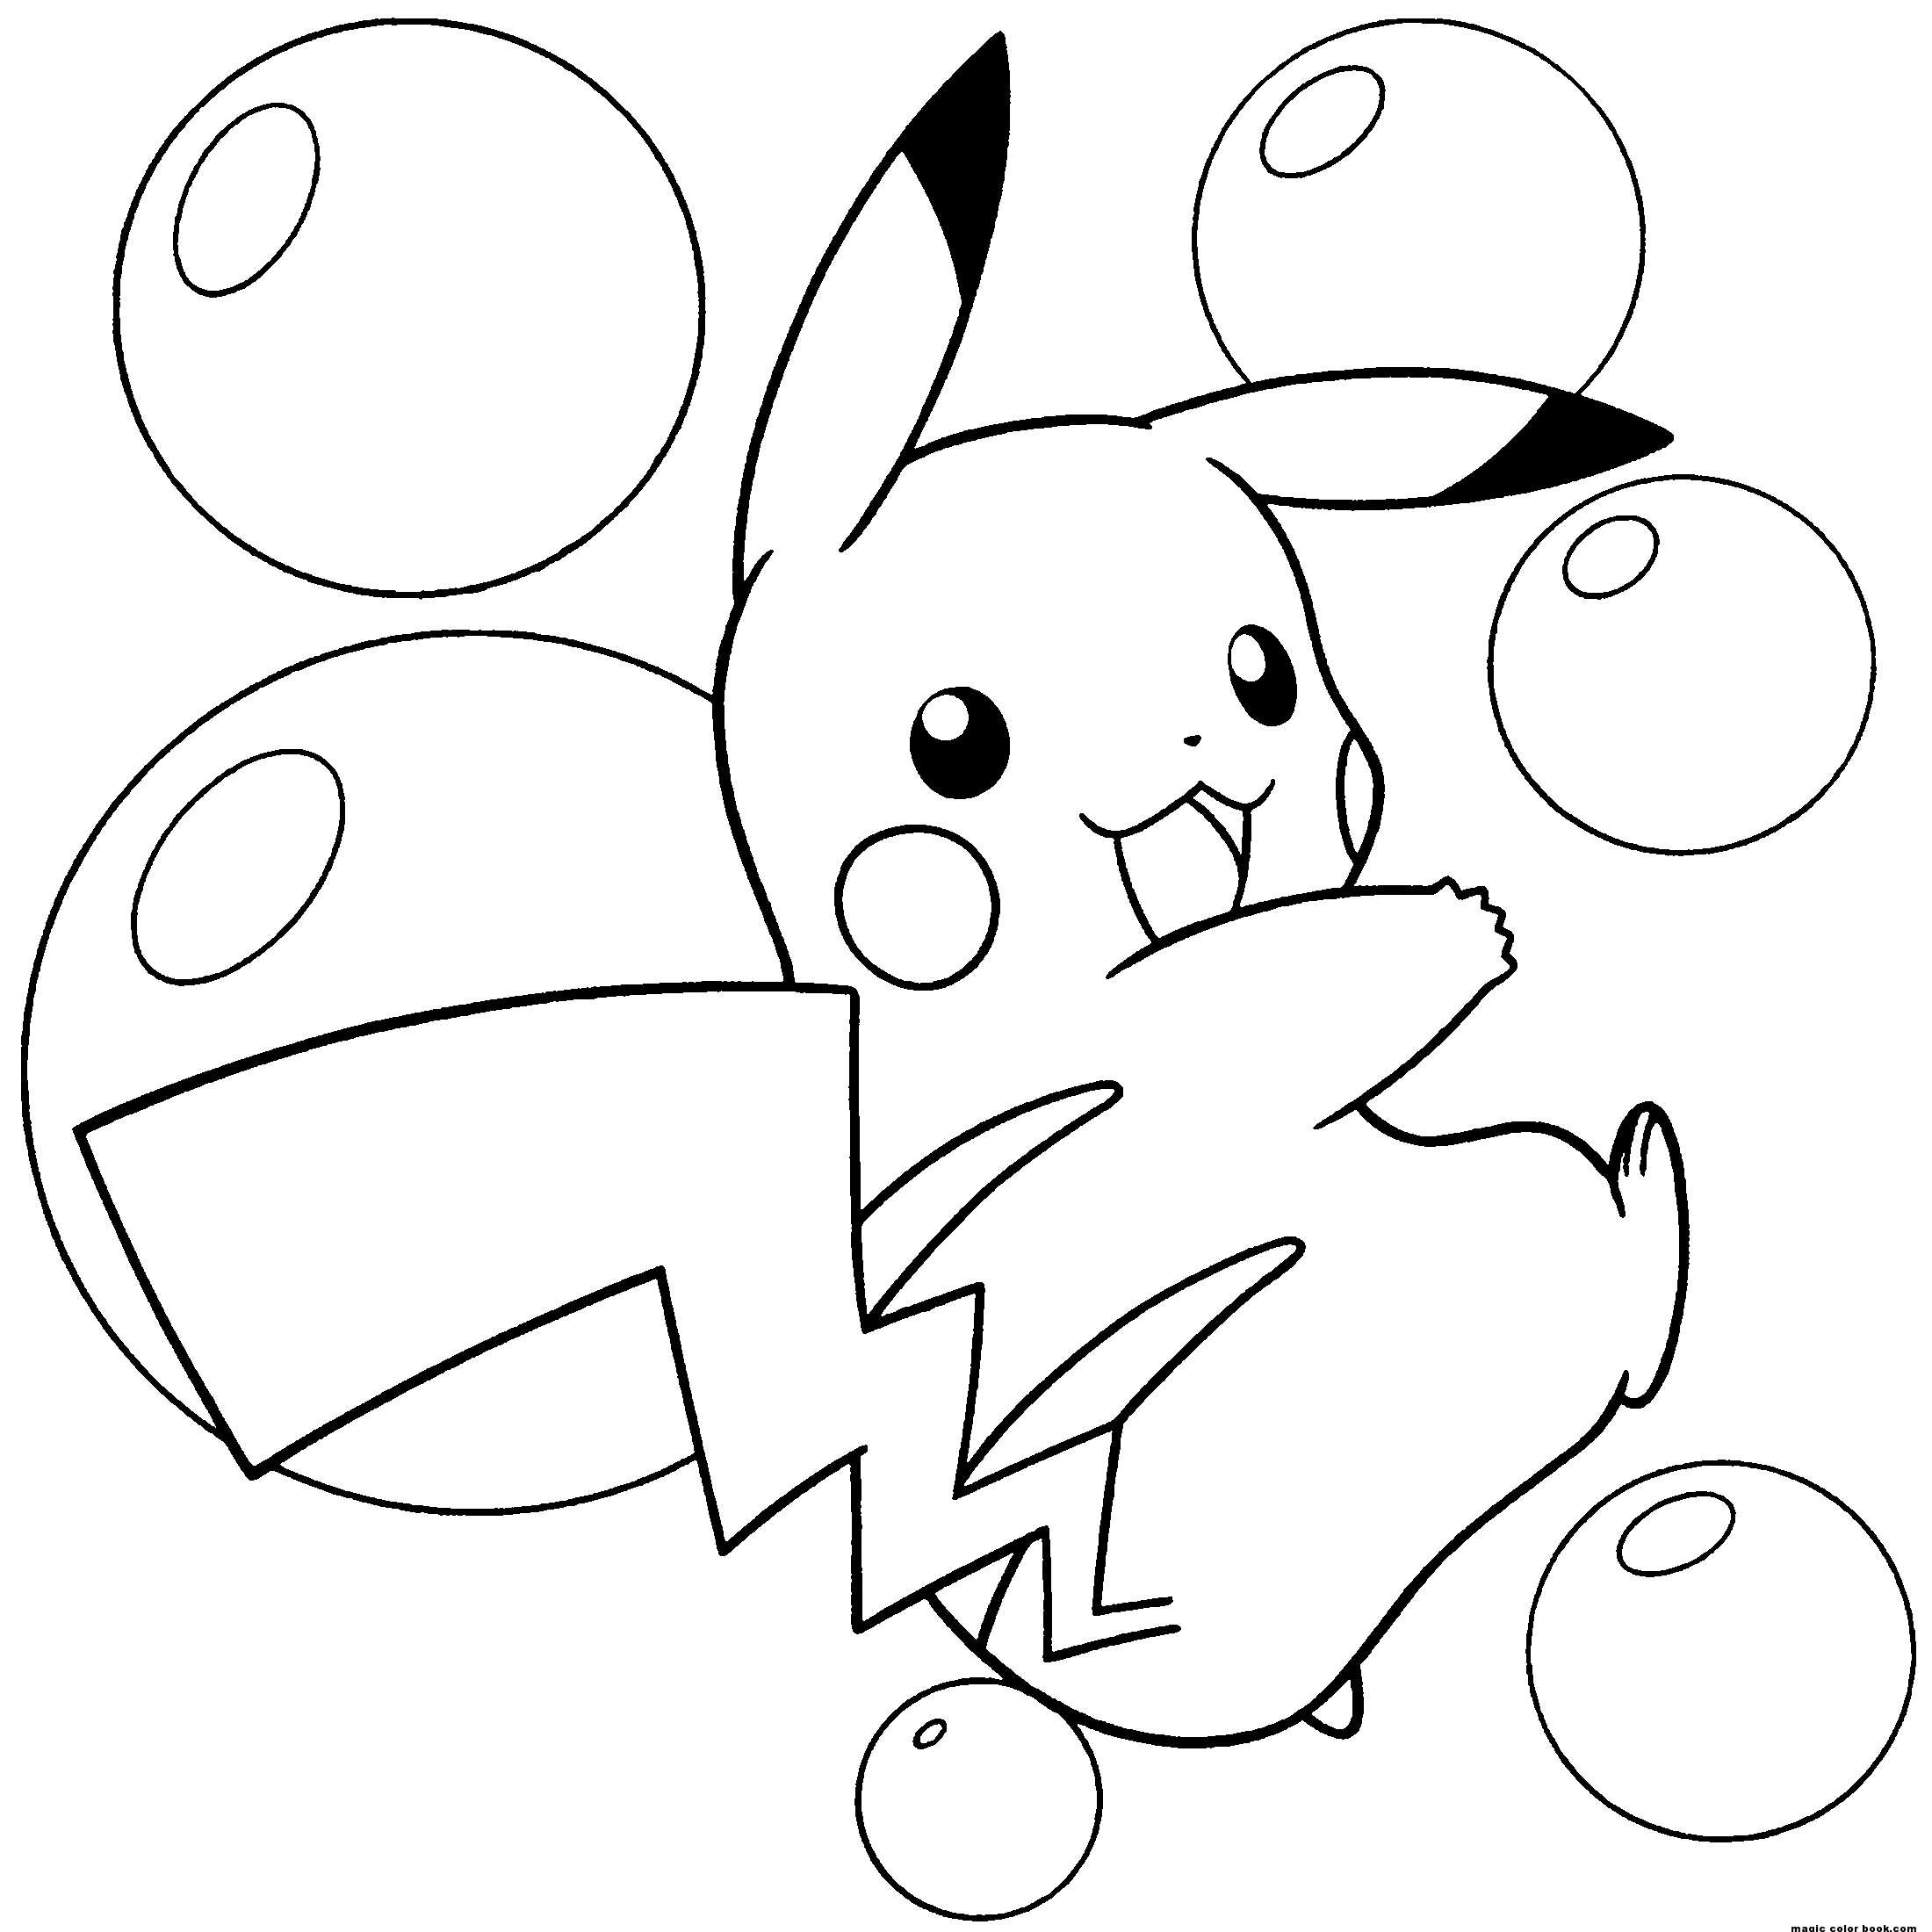 - 10 Coloring Pages Of Pokemon - Print Color Craft